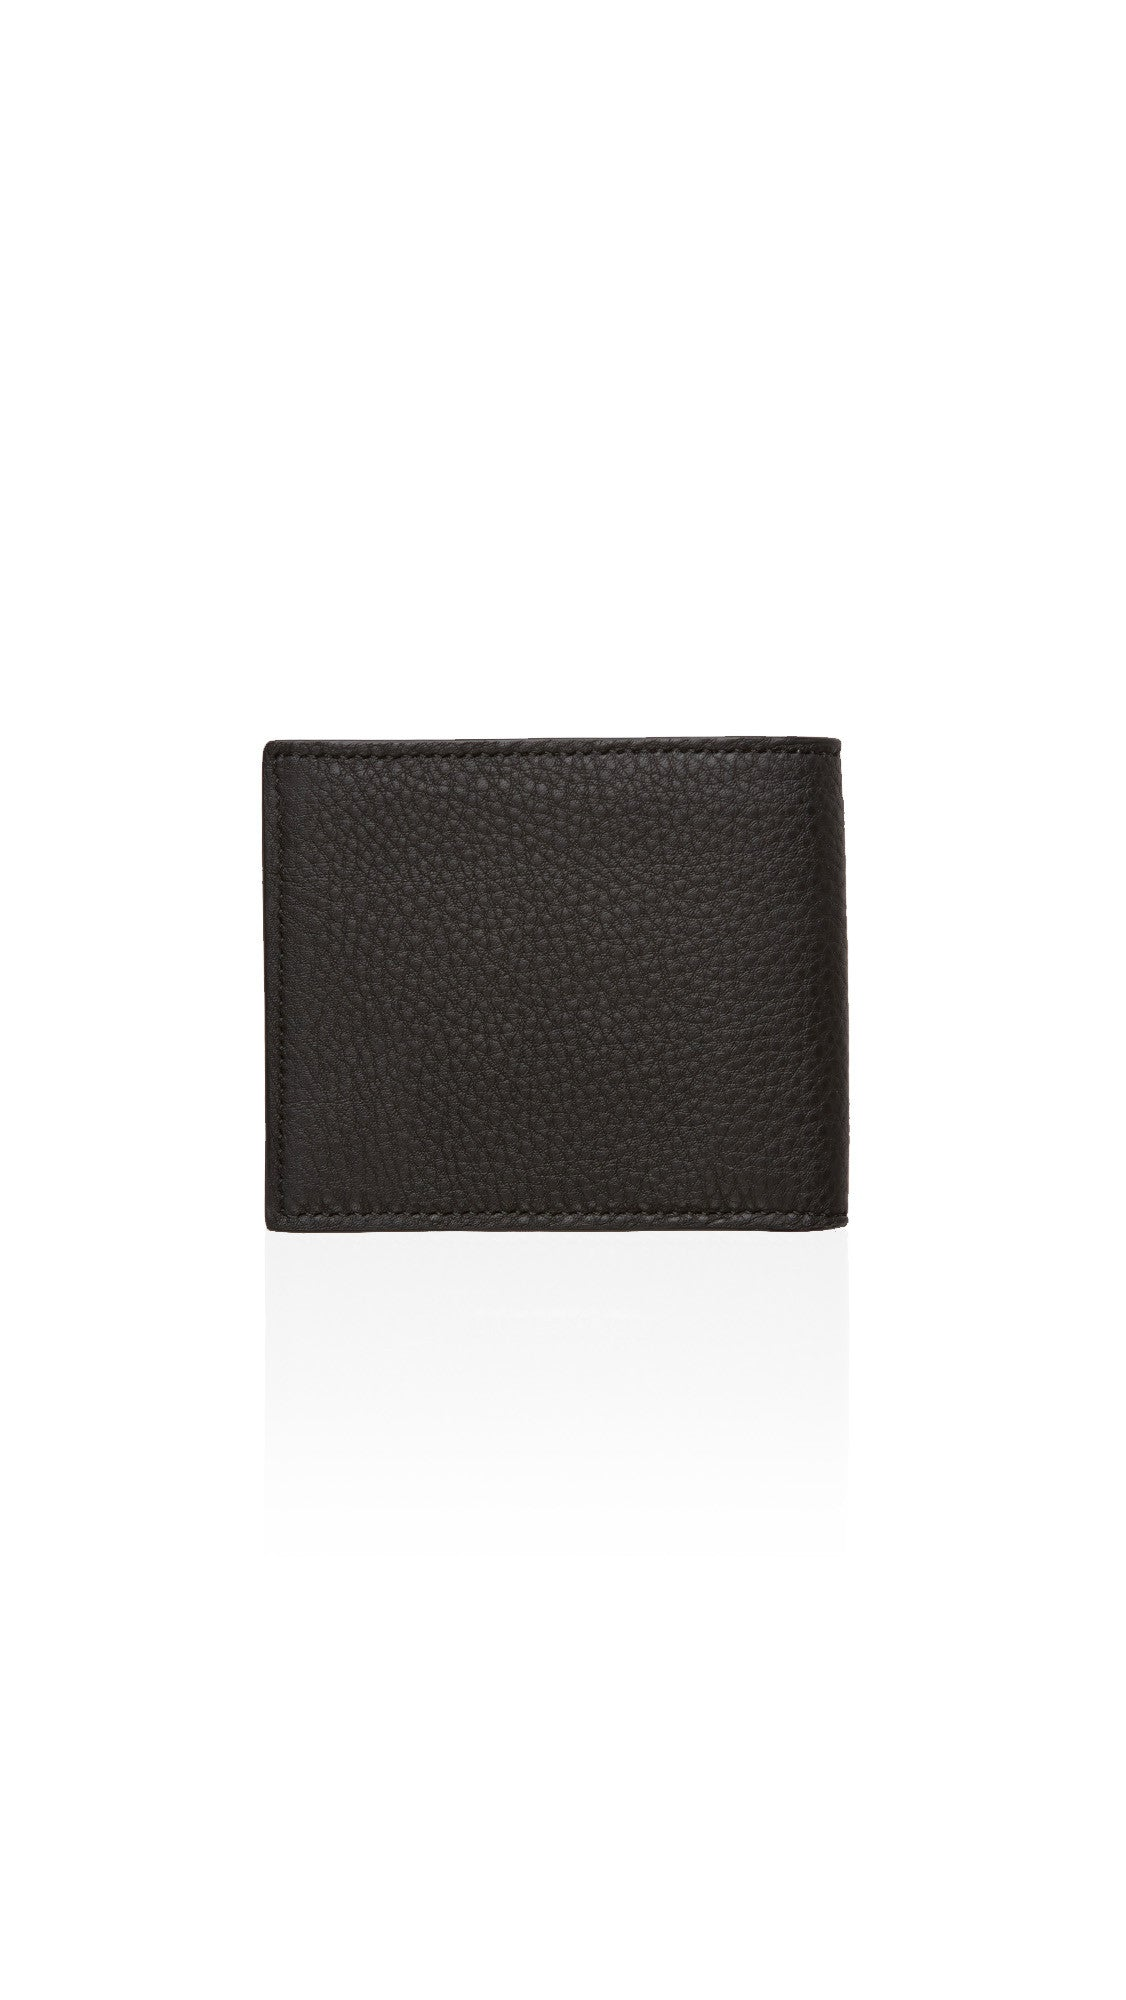 Wallet - Matte Leather